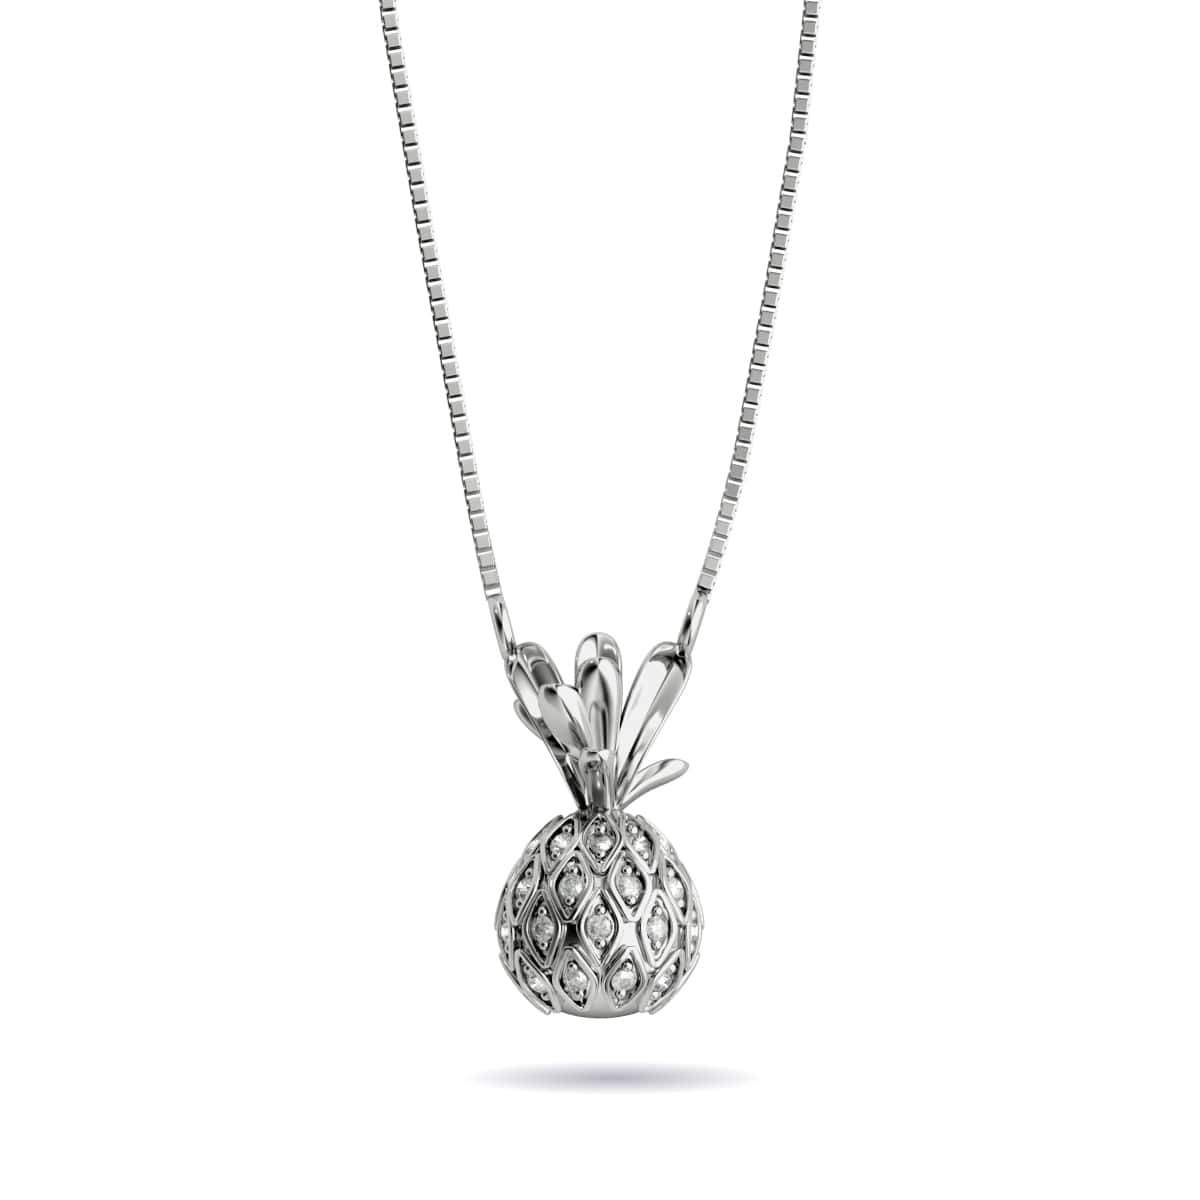 Pina Colada | .925 Sterling Silver | Crystal Pineapple Infinity Clasp Necklace